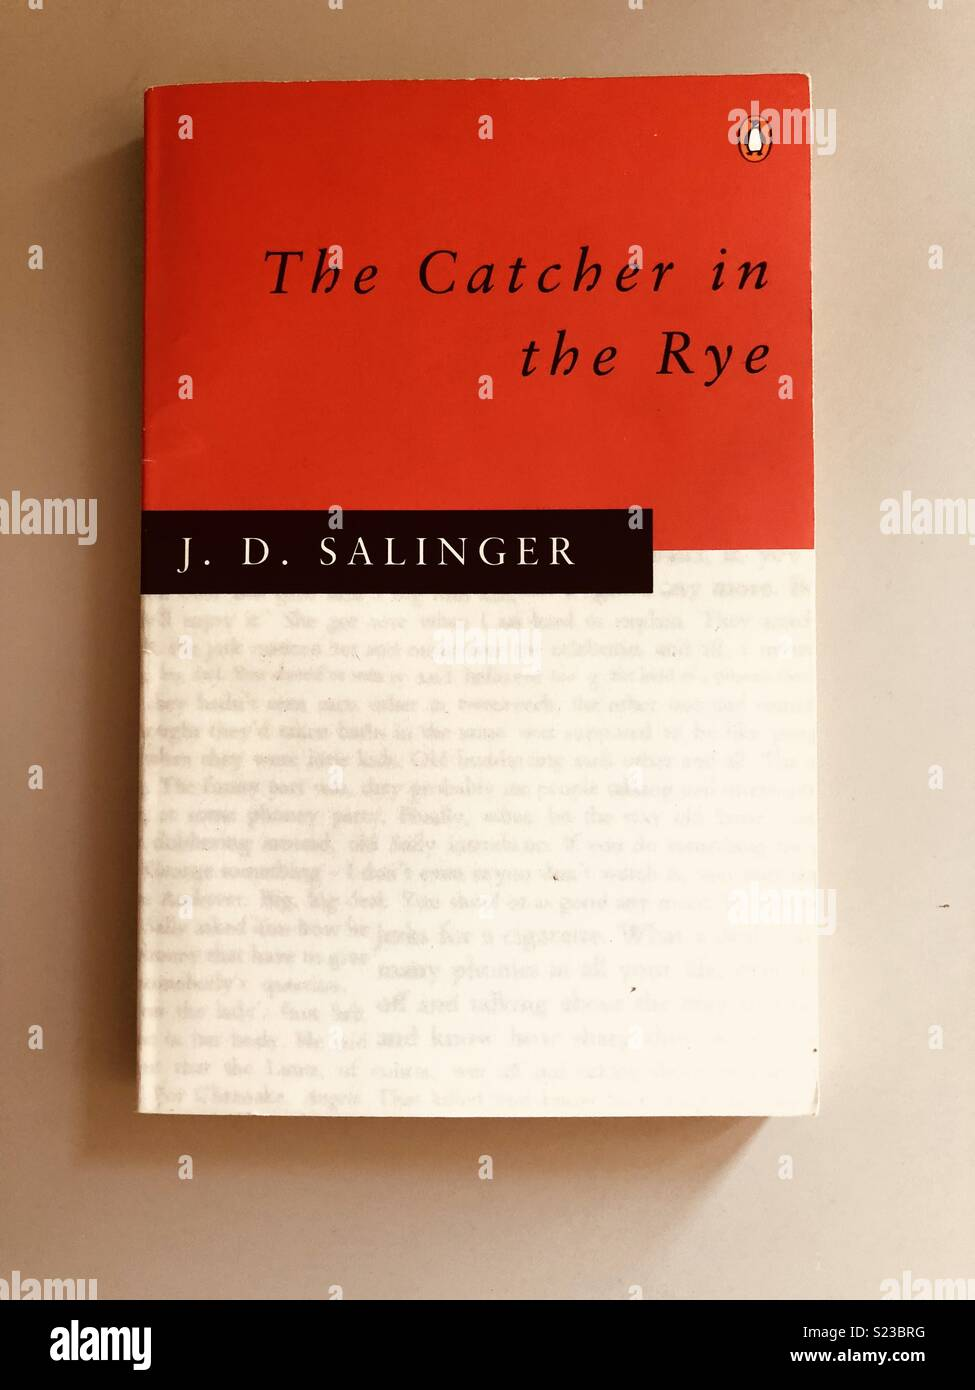 The catcher in the rye by J. D. Salinger paperback - Stock Image